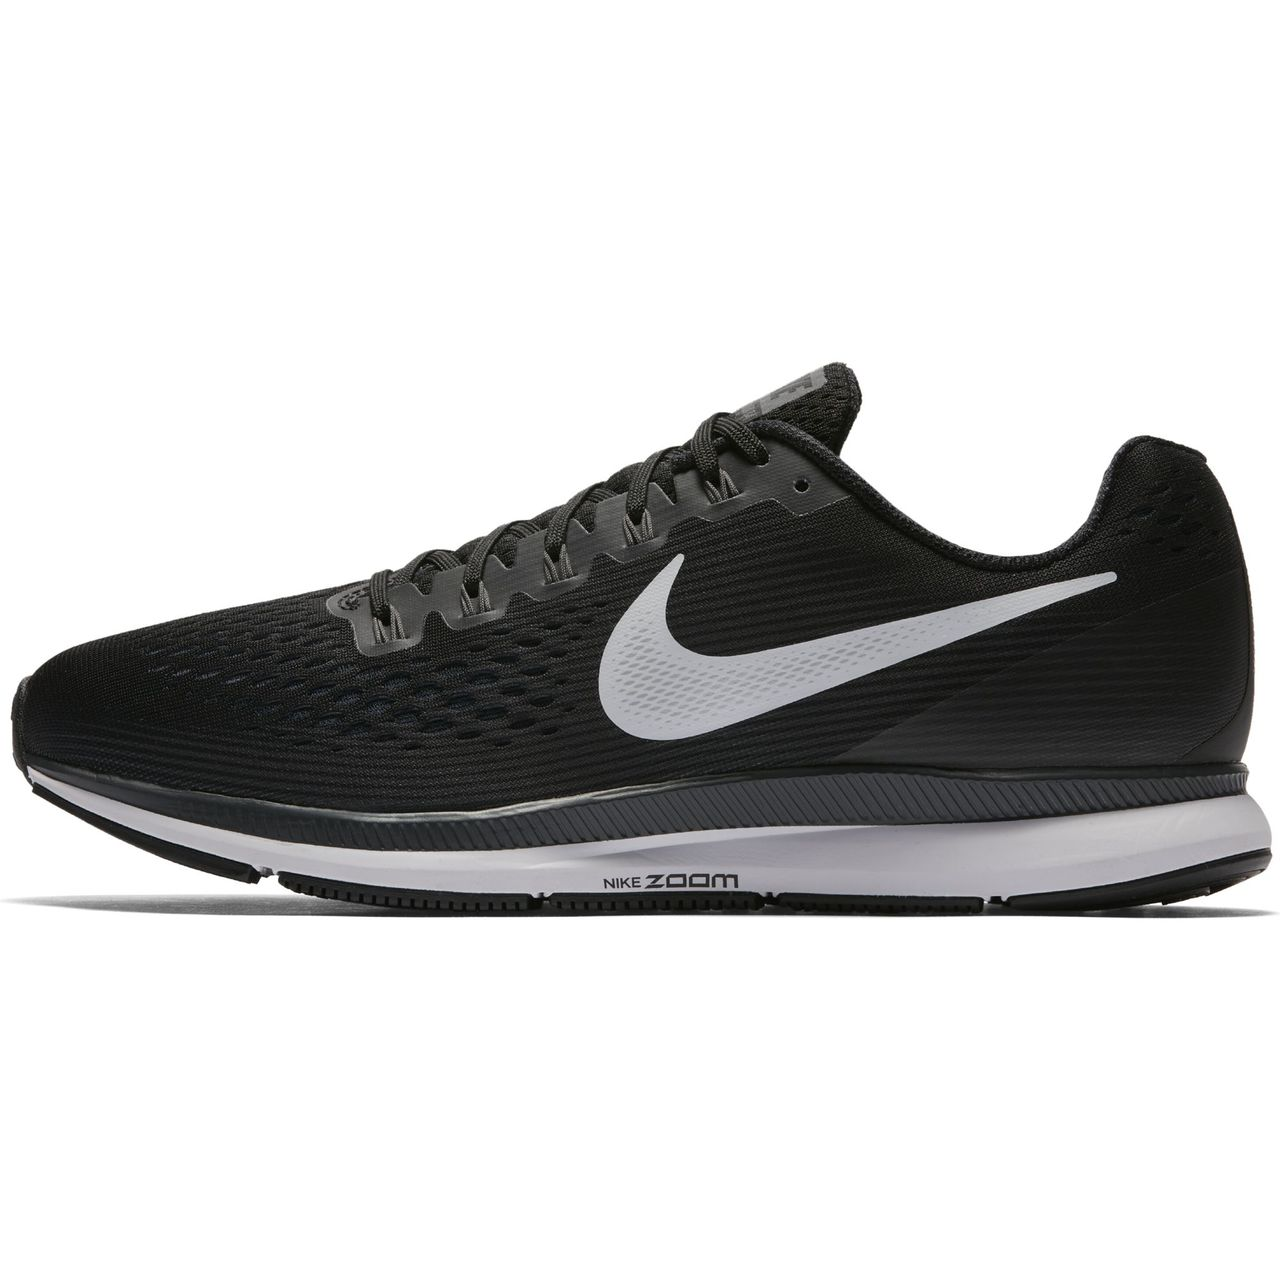 super popular 686c8 4cd3e Nike Men s Air Zoom Pegasus 34 - Black White